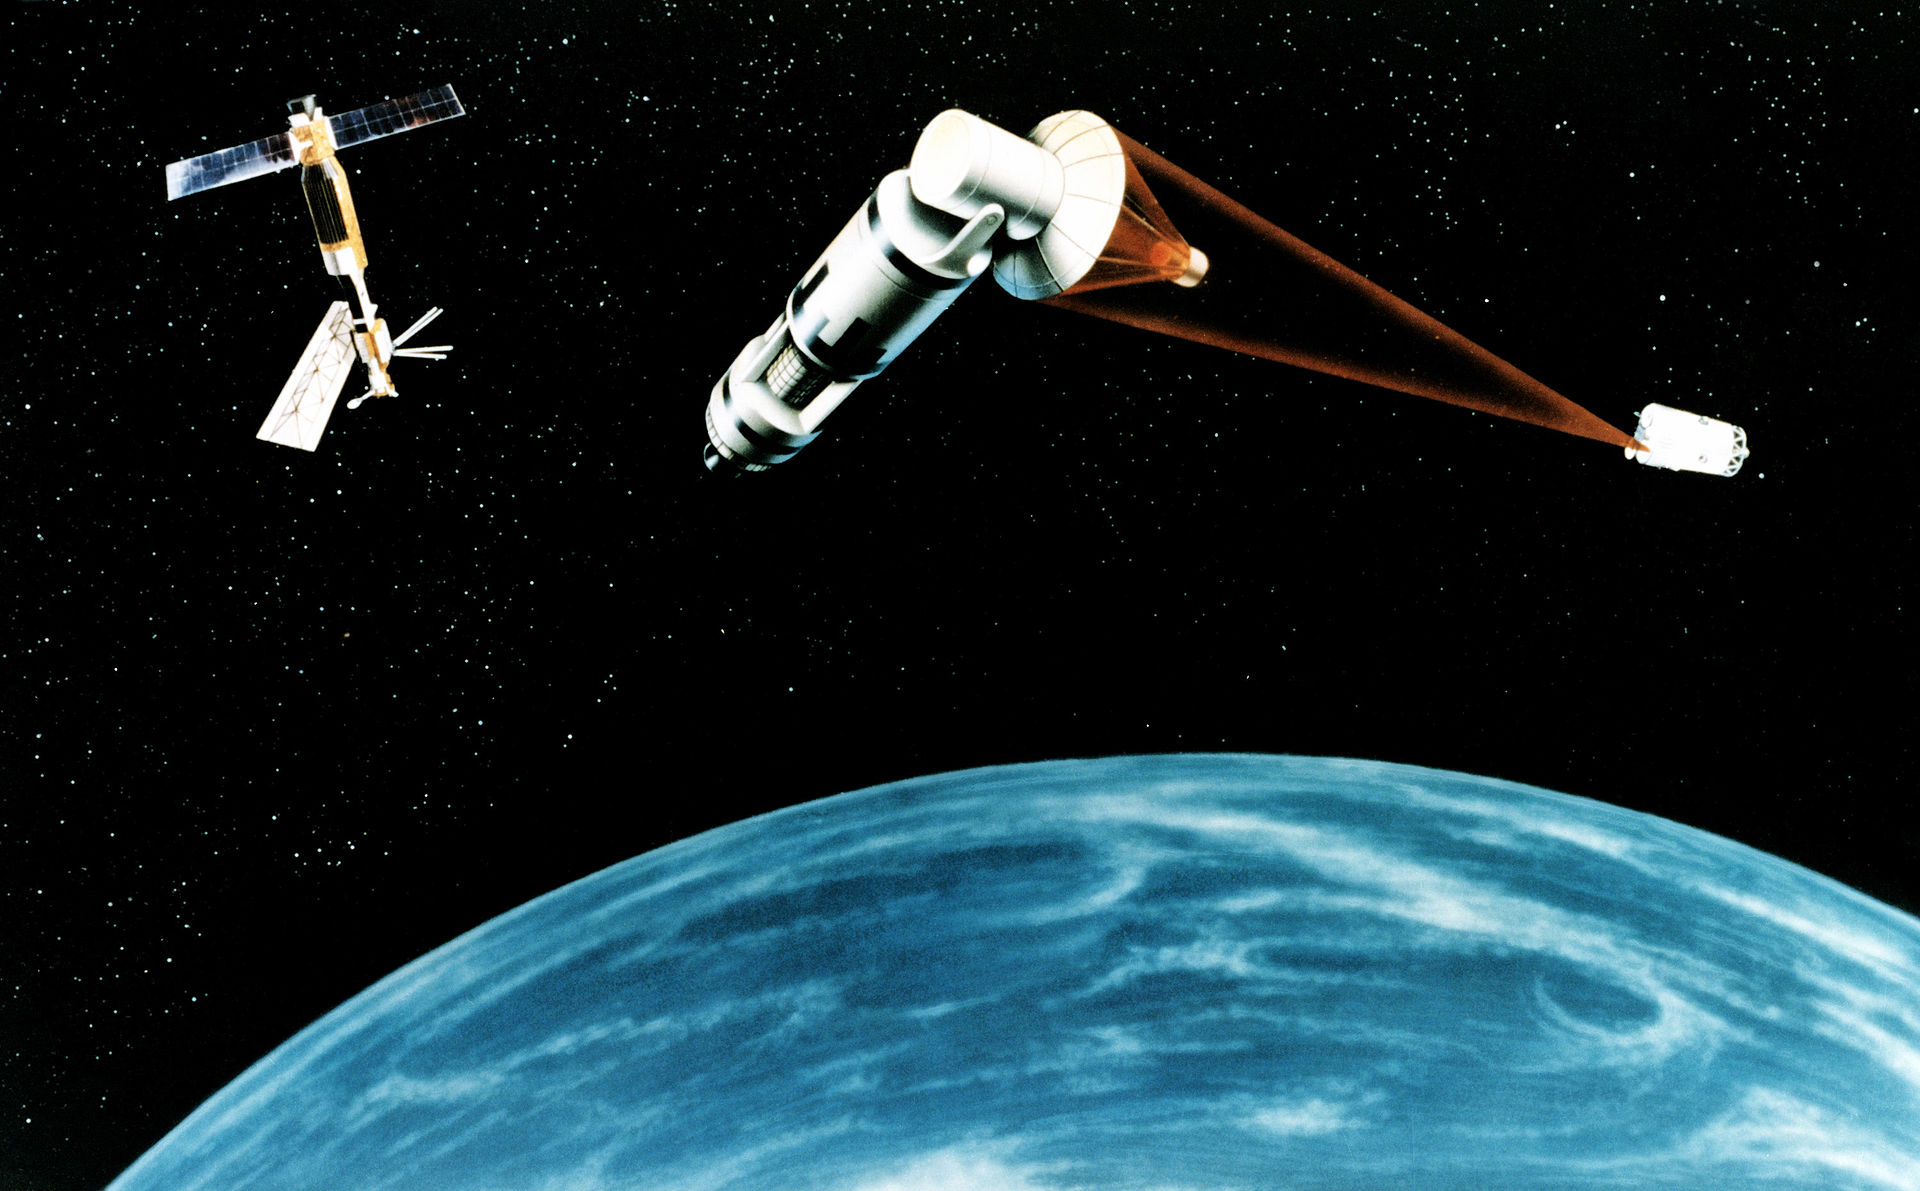 The 1984 SDI concept of a laser-equipped satellite firing on another.